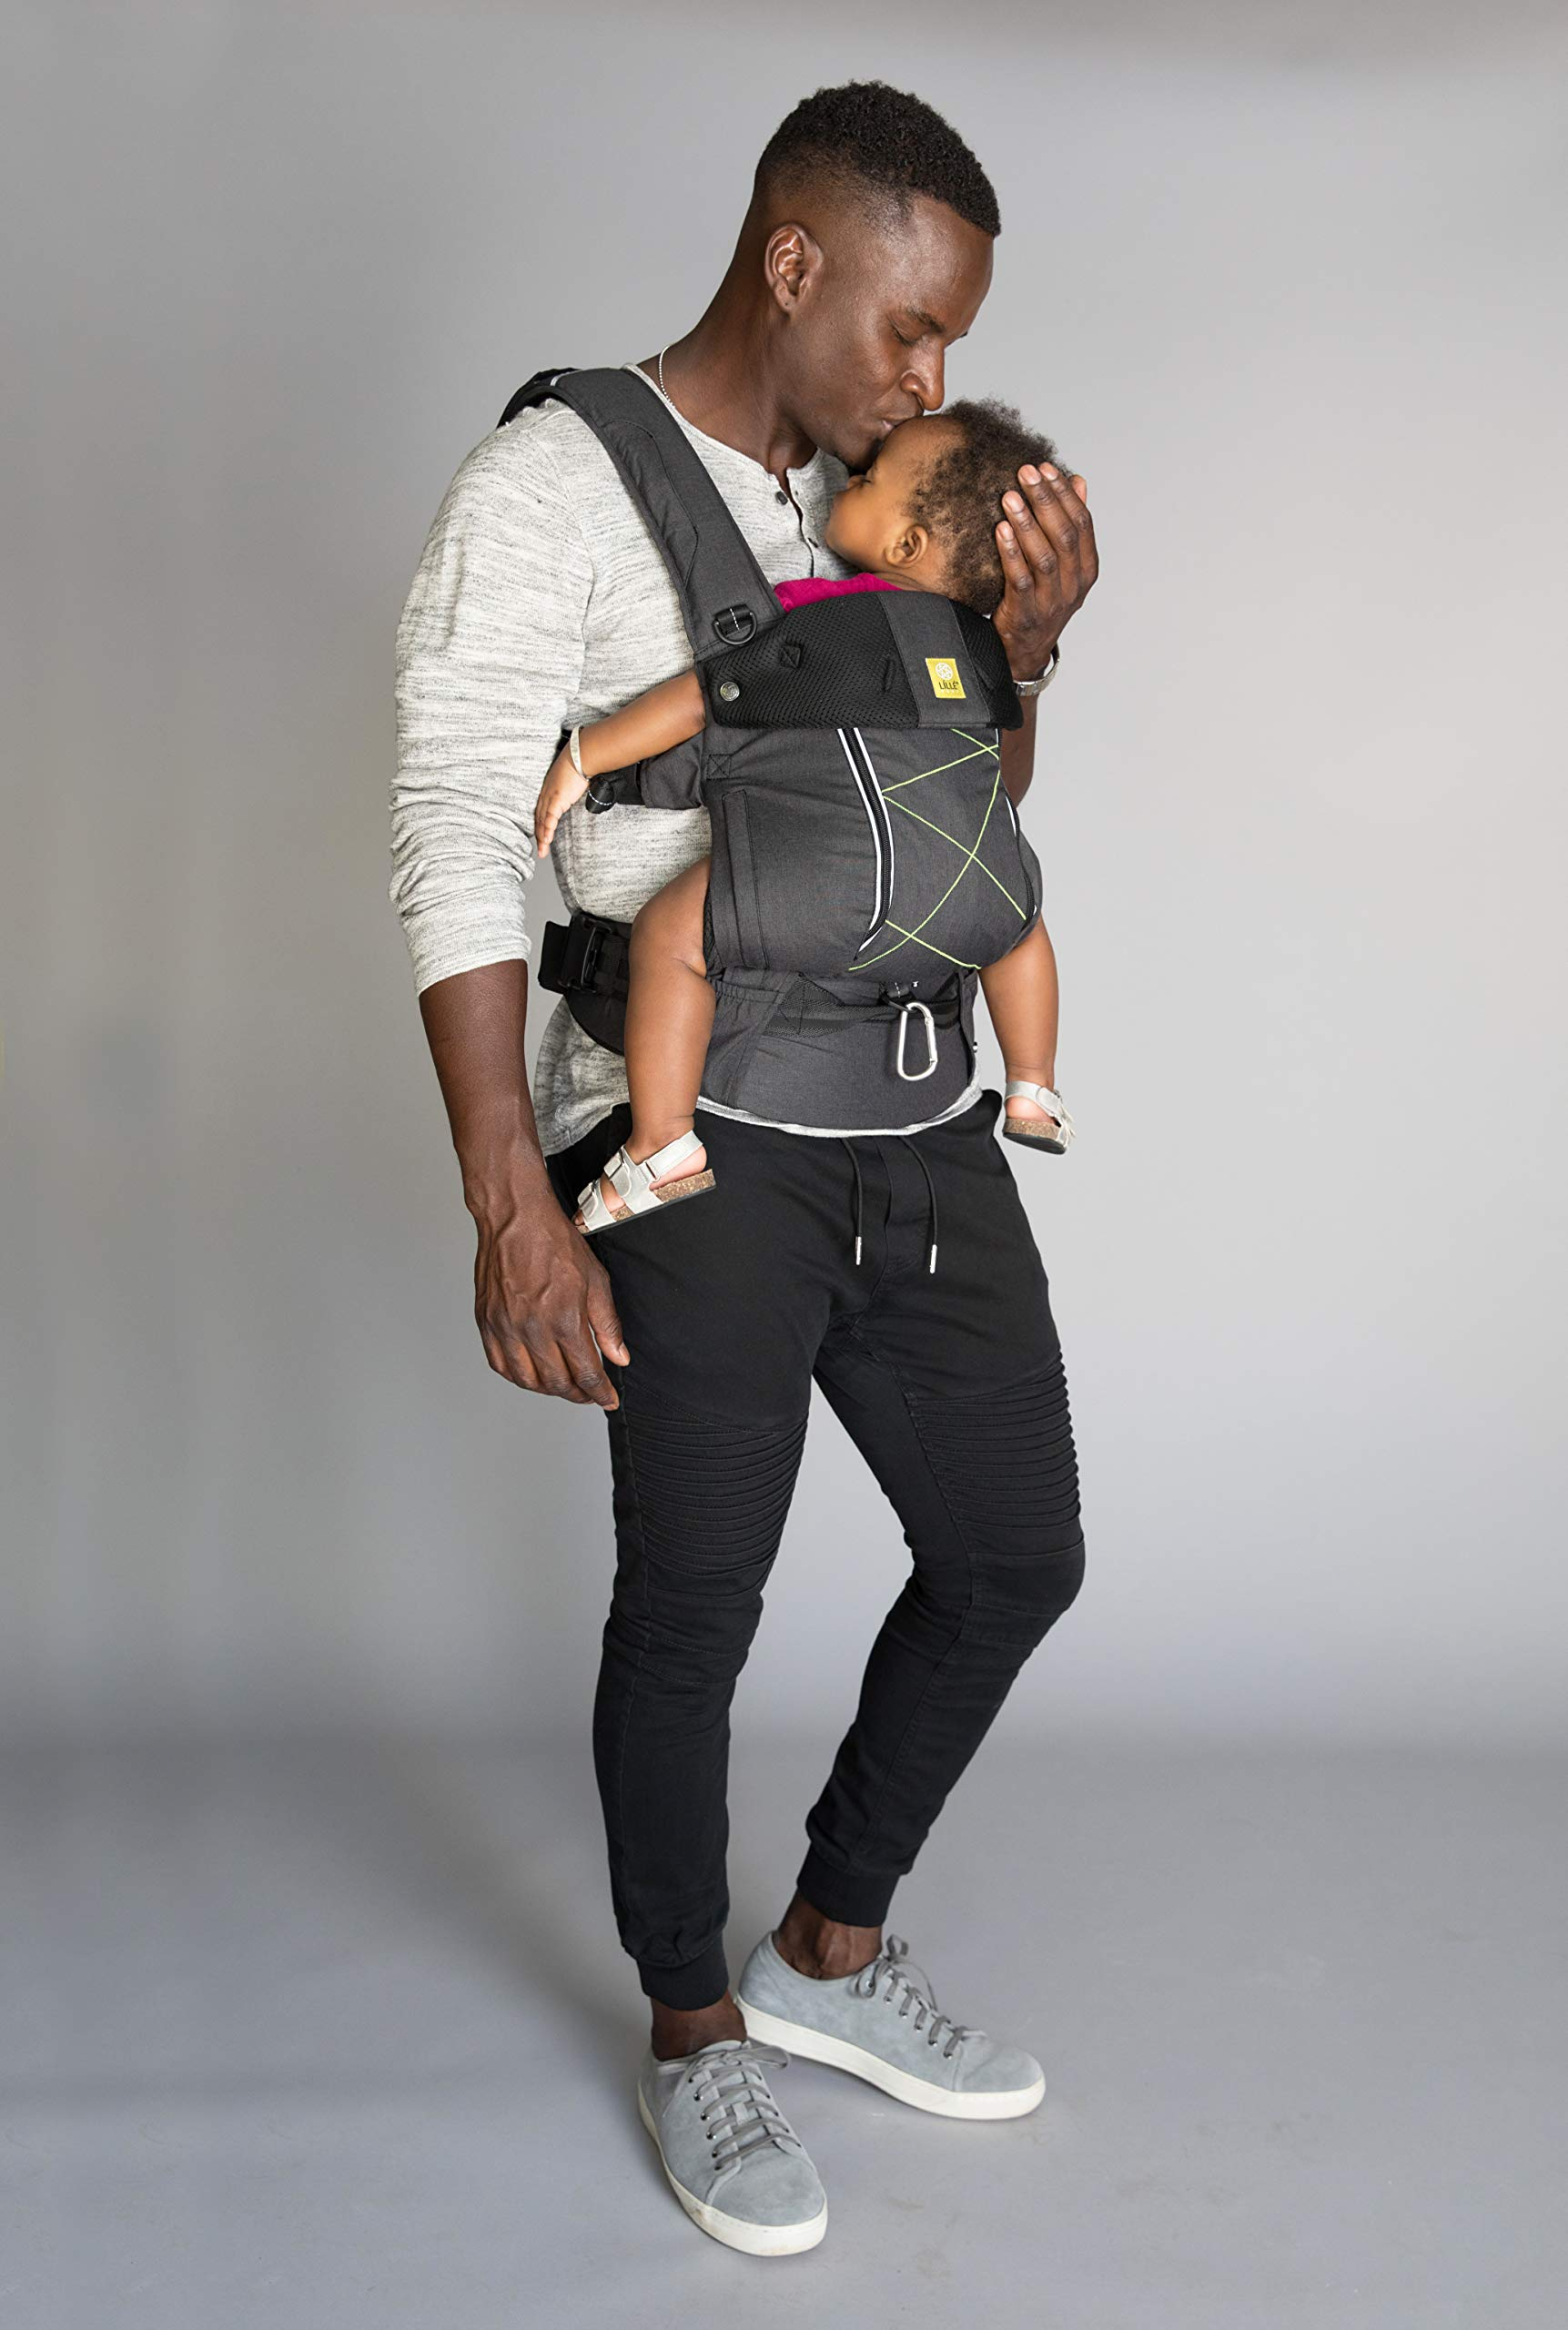 LÍLLÉbaby  Complete Pursuit All Seasons 6-in-1 Baby Carrier, Graphite Lillebaby Designed specifically for parents on the go, our pusuit series combines the comfort and functionality of our 6 in 1 design with adventure-ready features to help you show your little one the world Suitable from 3.2- 20kg extended comfortable use for parent and child with no additional infant support required for new-borns Unique líllébaby lumbar support for the wearer, with wide padded waist belt and shoulder straps 4